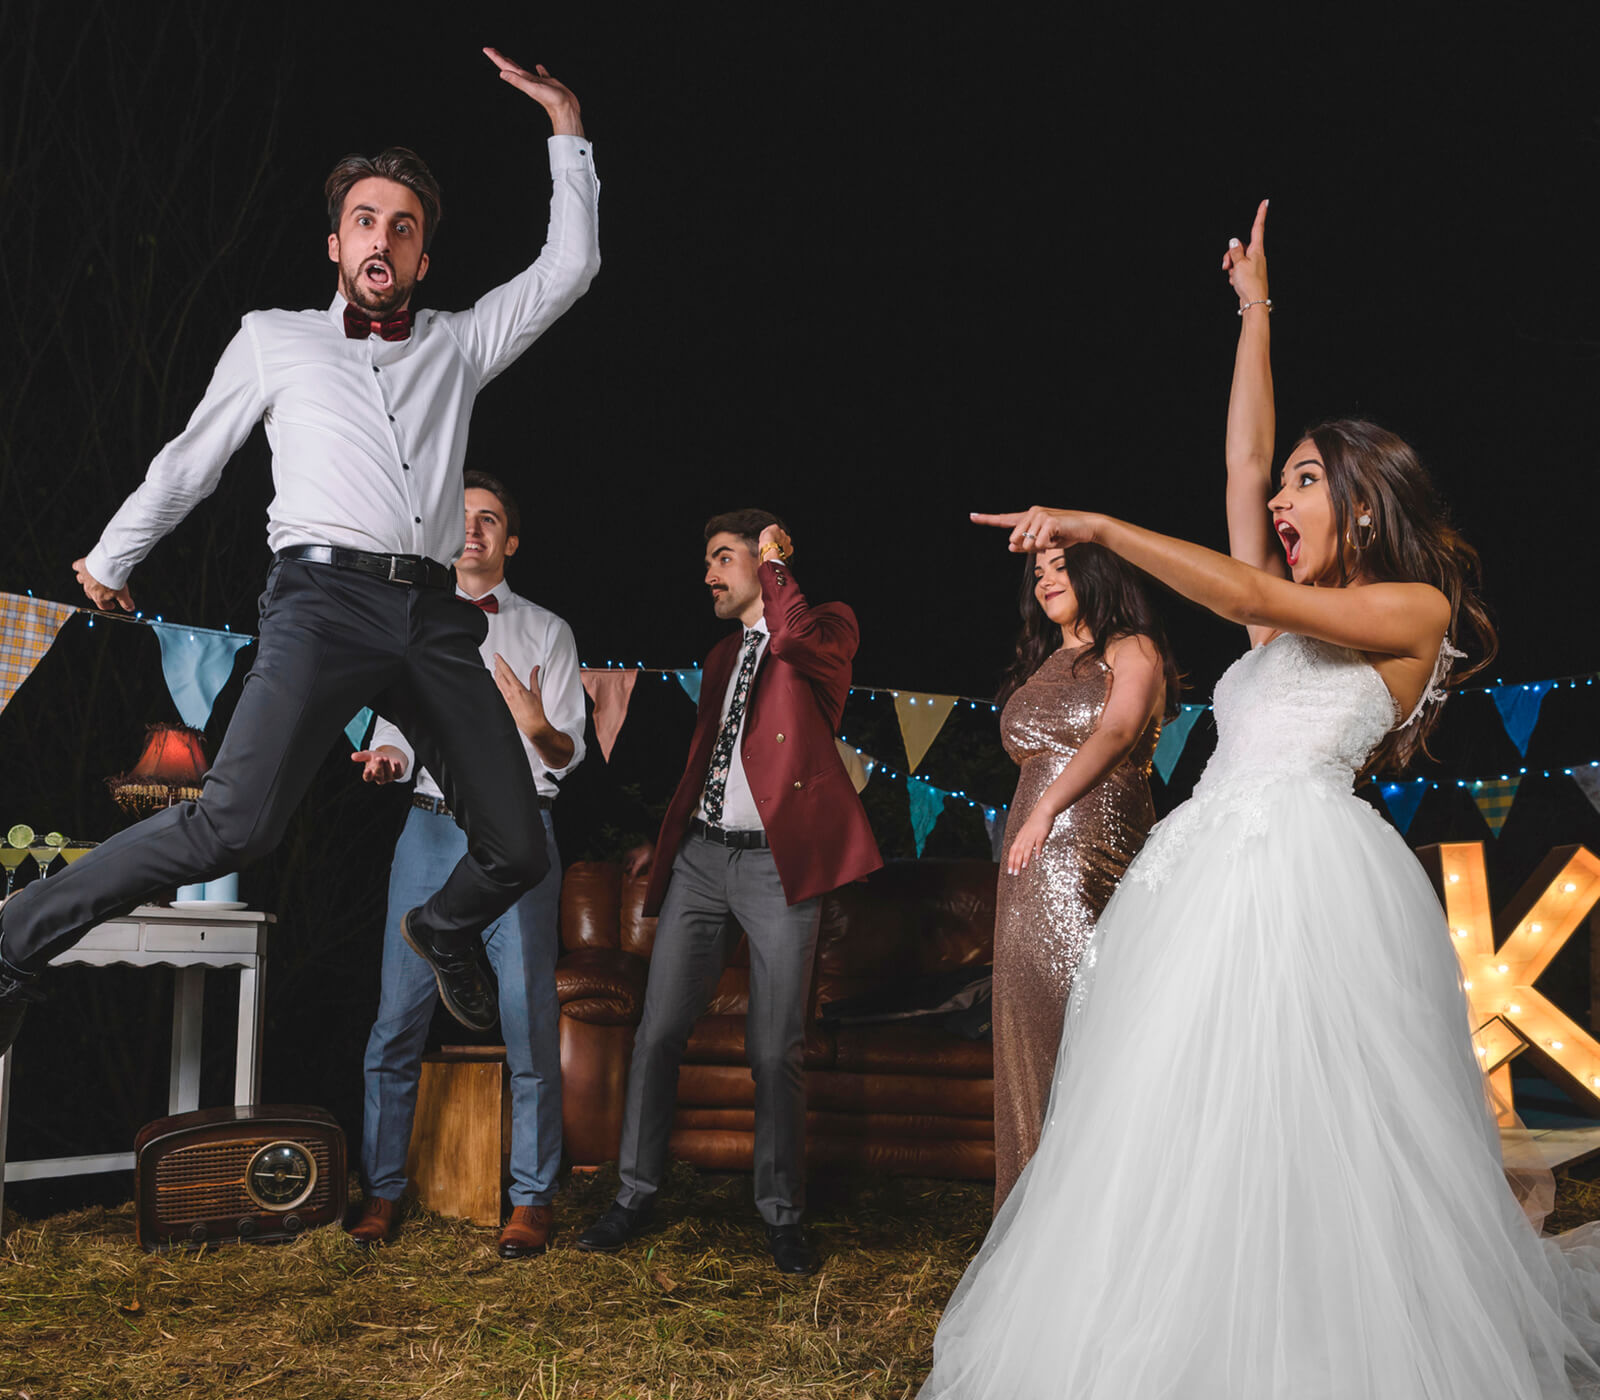 1-crazy-wedding-pictures.jpg